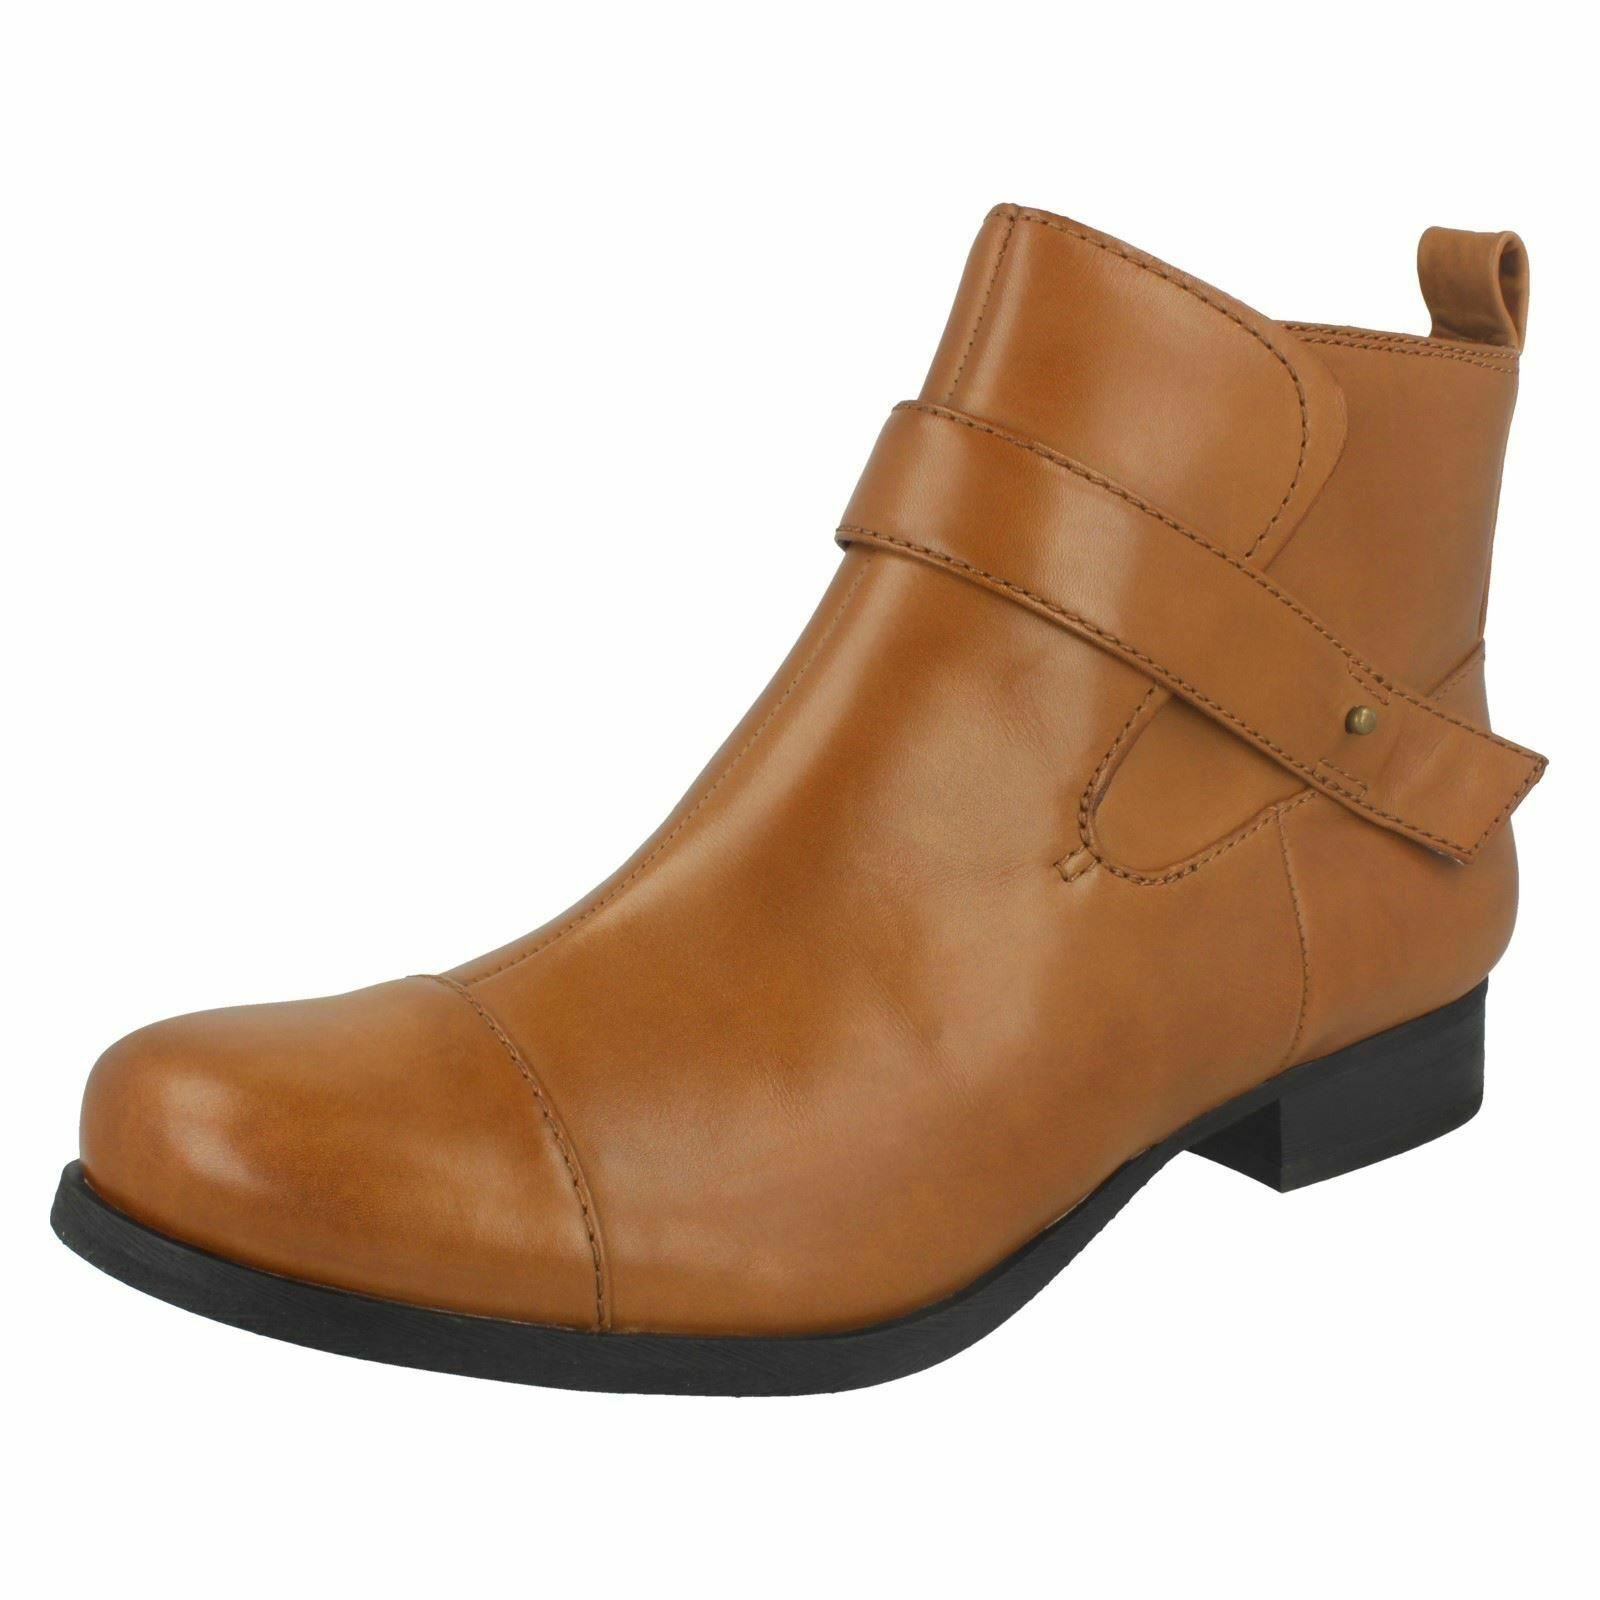 Signore Clarks Ladbroke Magic Dark Tan Stivaletti in Pelle raccordo D